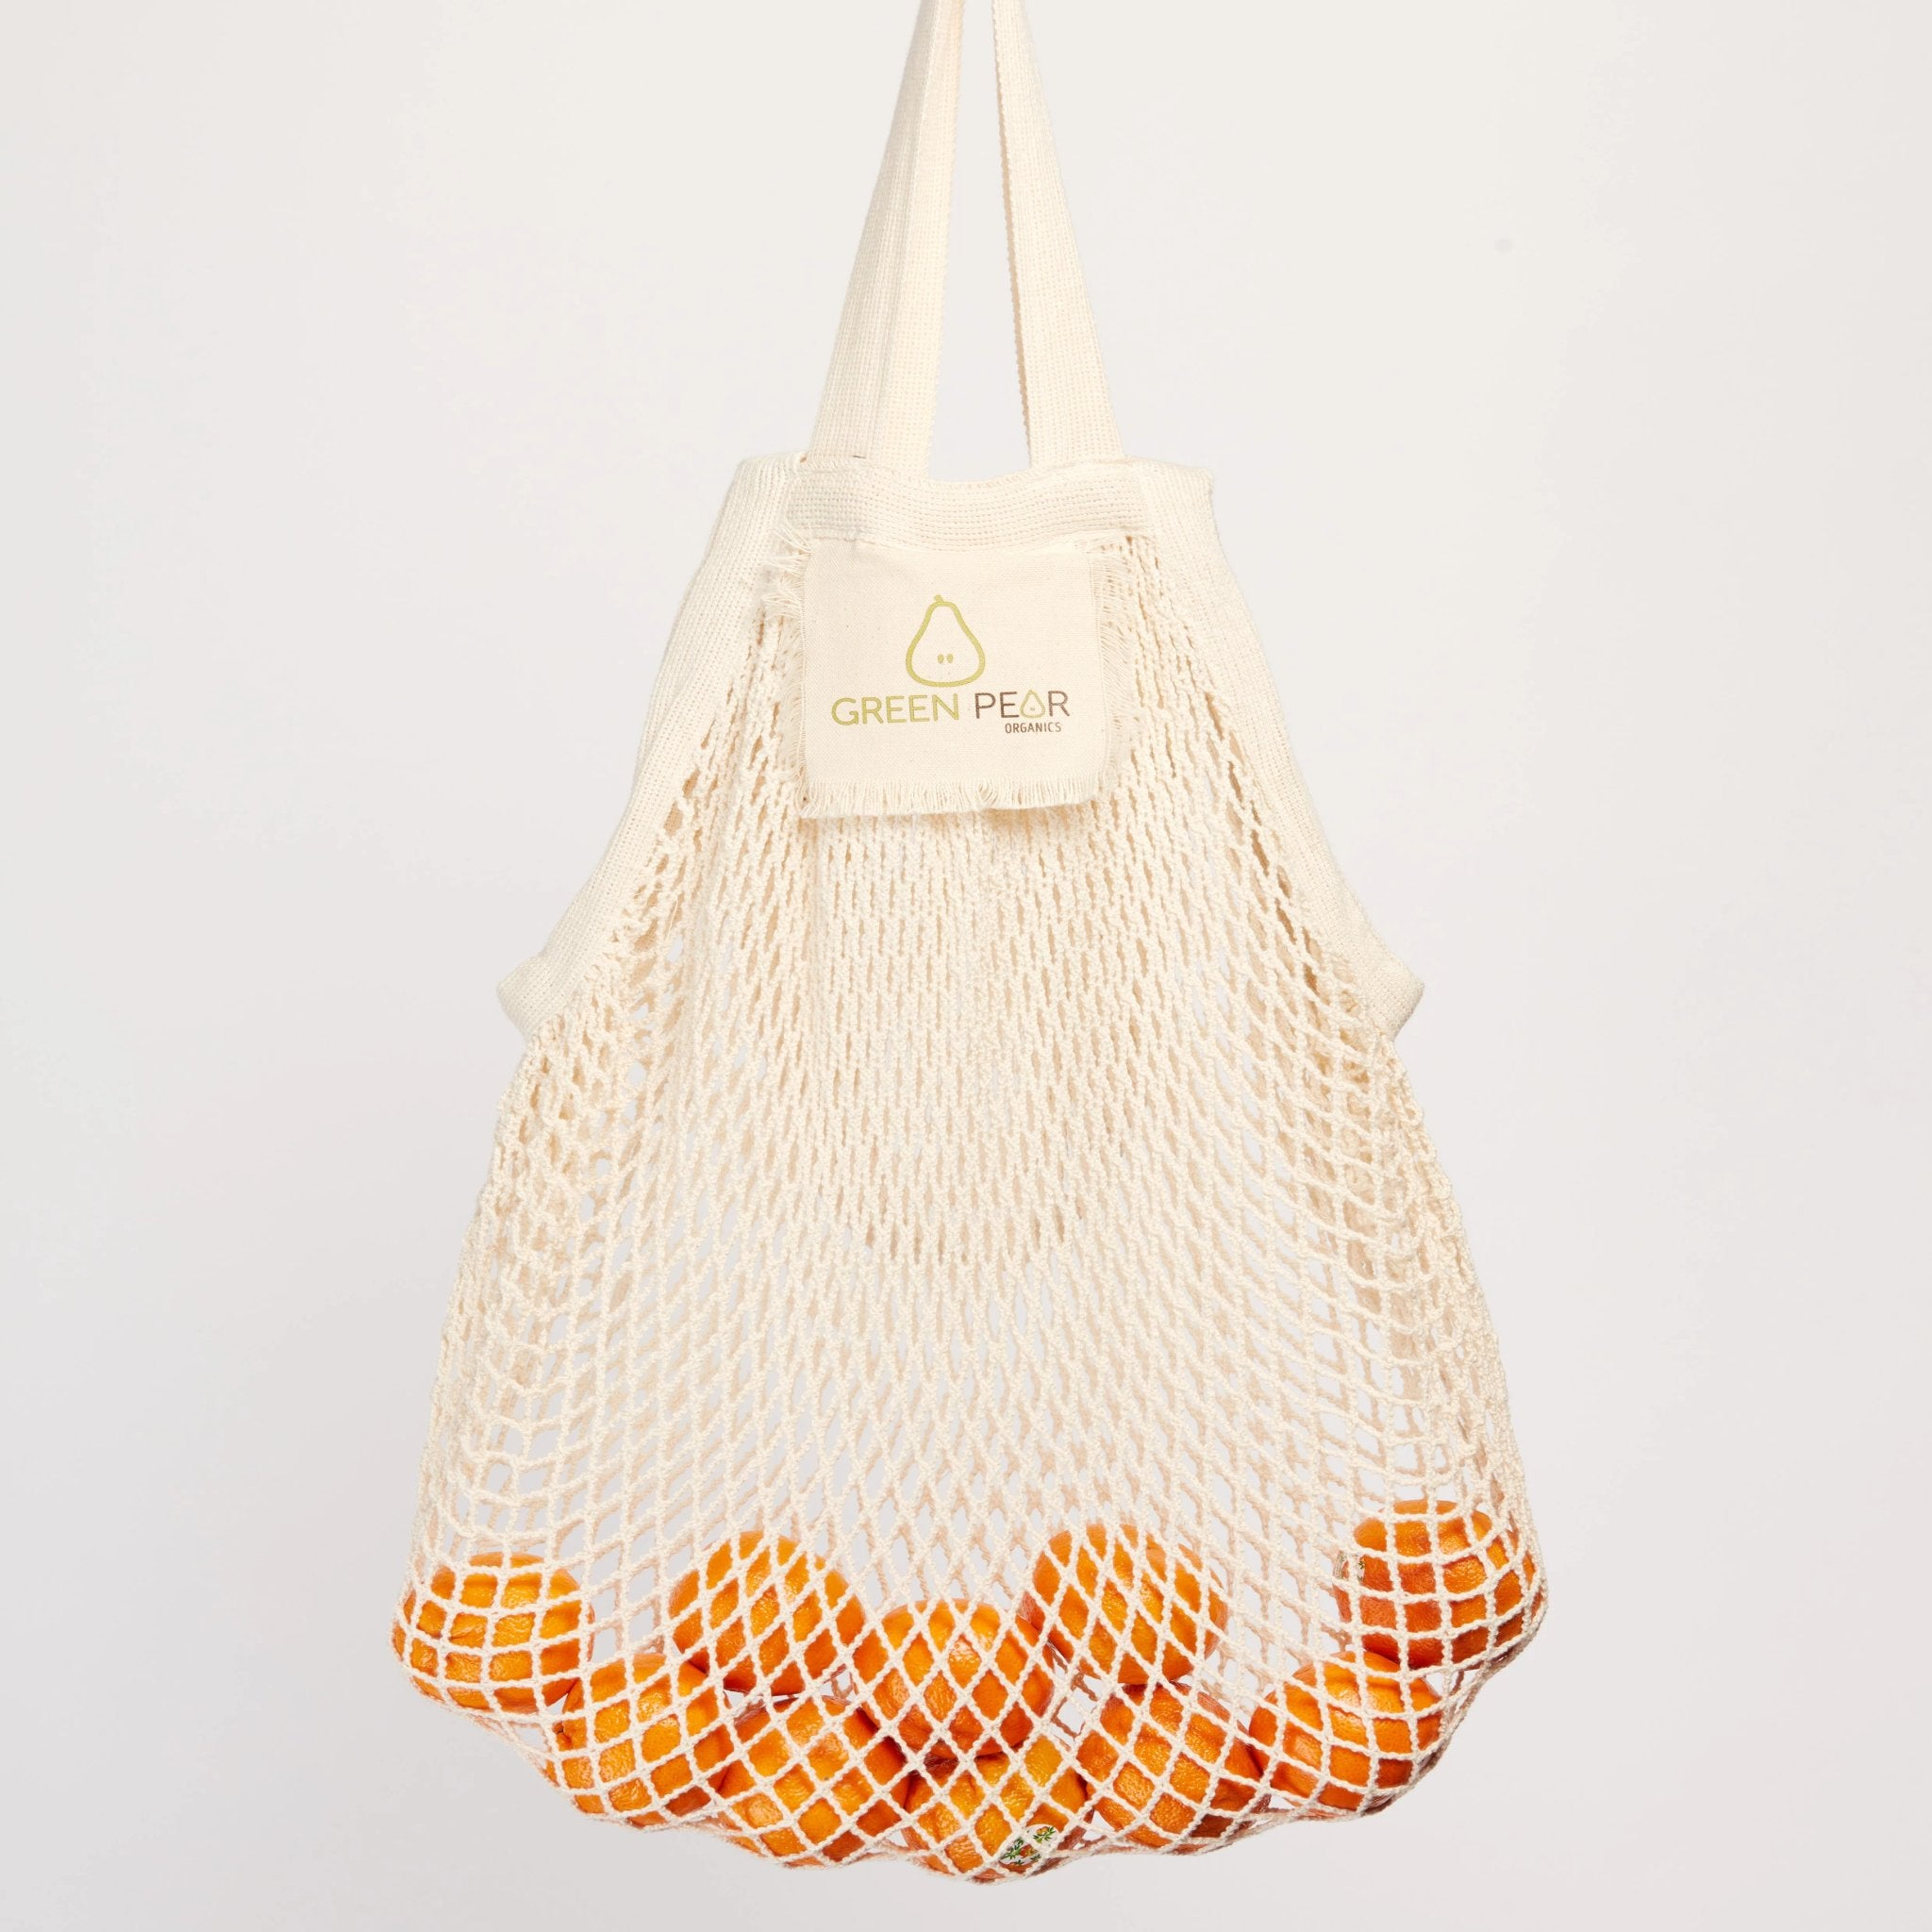 Market String Bag - XL Organic Cotton Mesh Tote